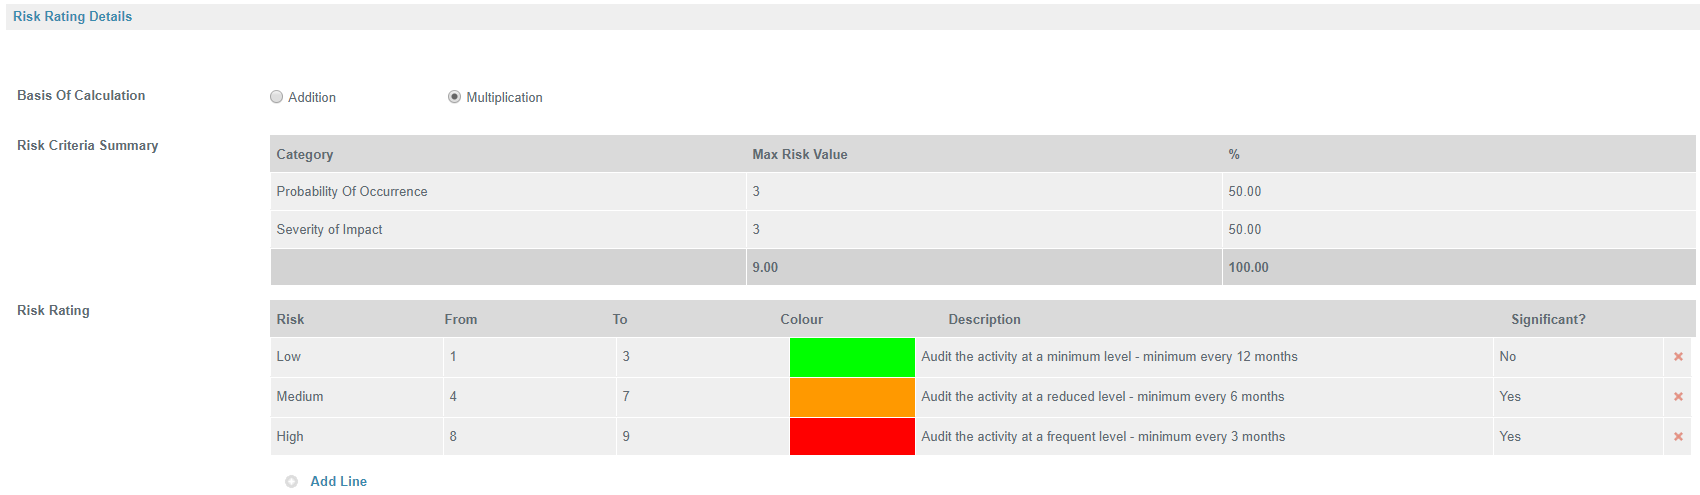 Risk Rating Details - RAM Risk Assessment Model Tool - Safefood 360°